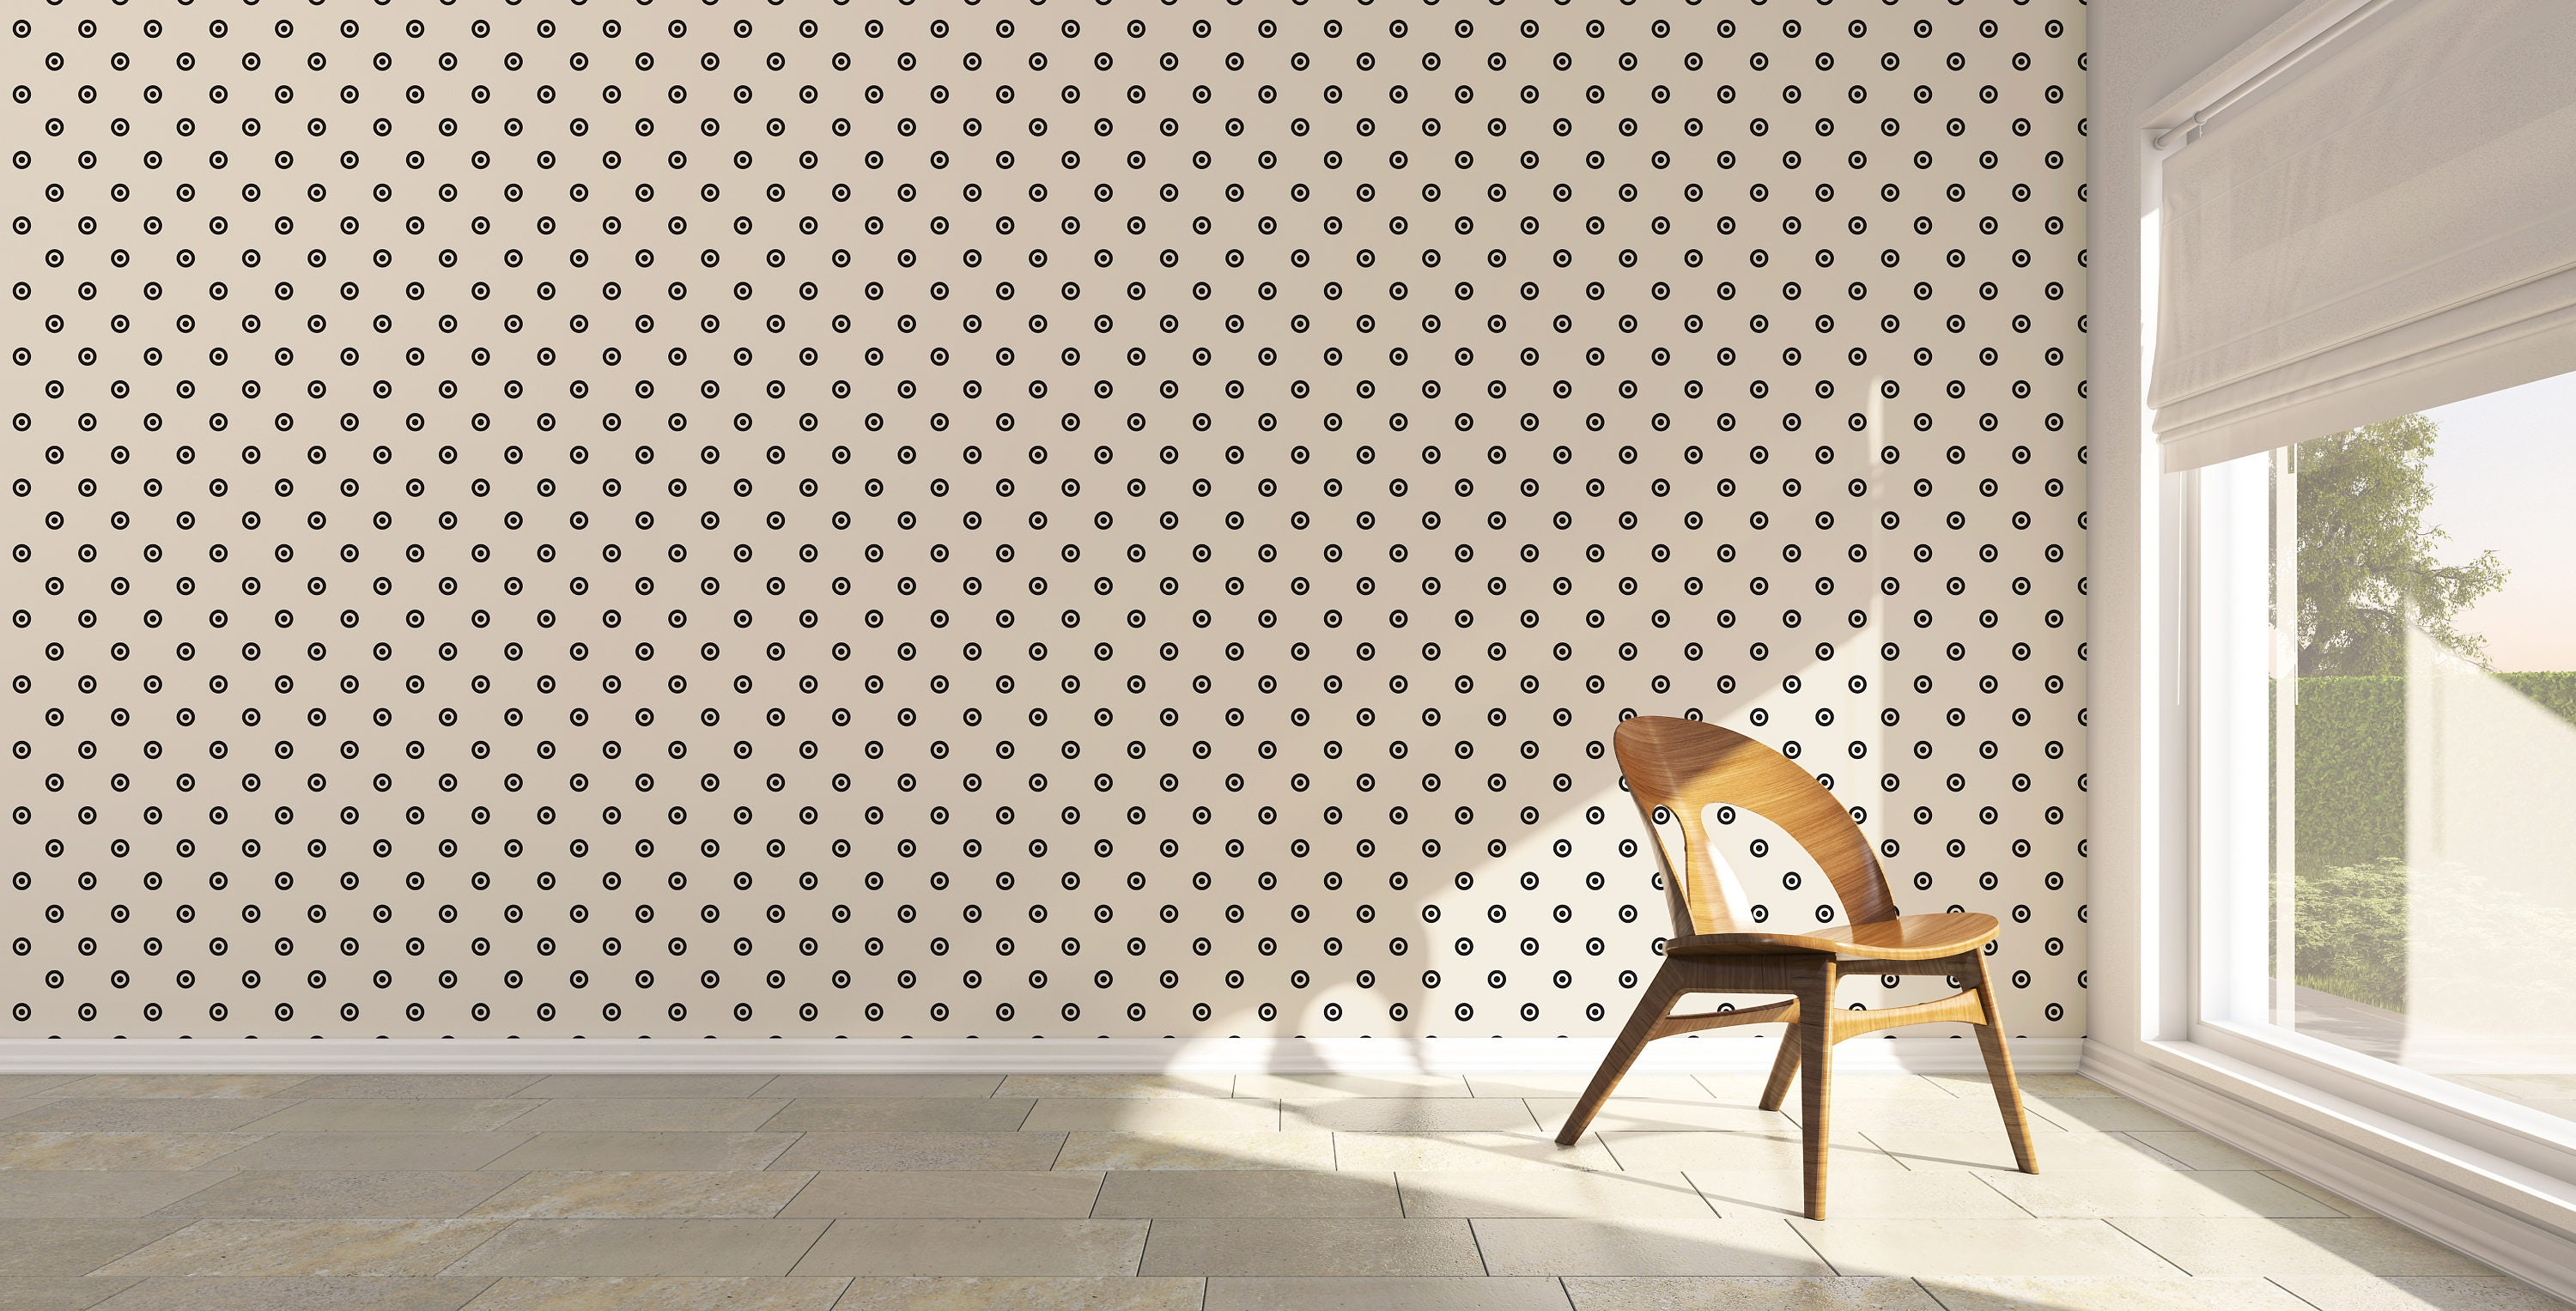 Removable Wallpaper Scandinavian Wallpaper Temporary